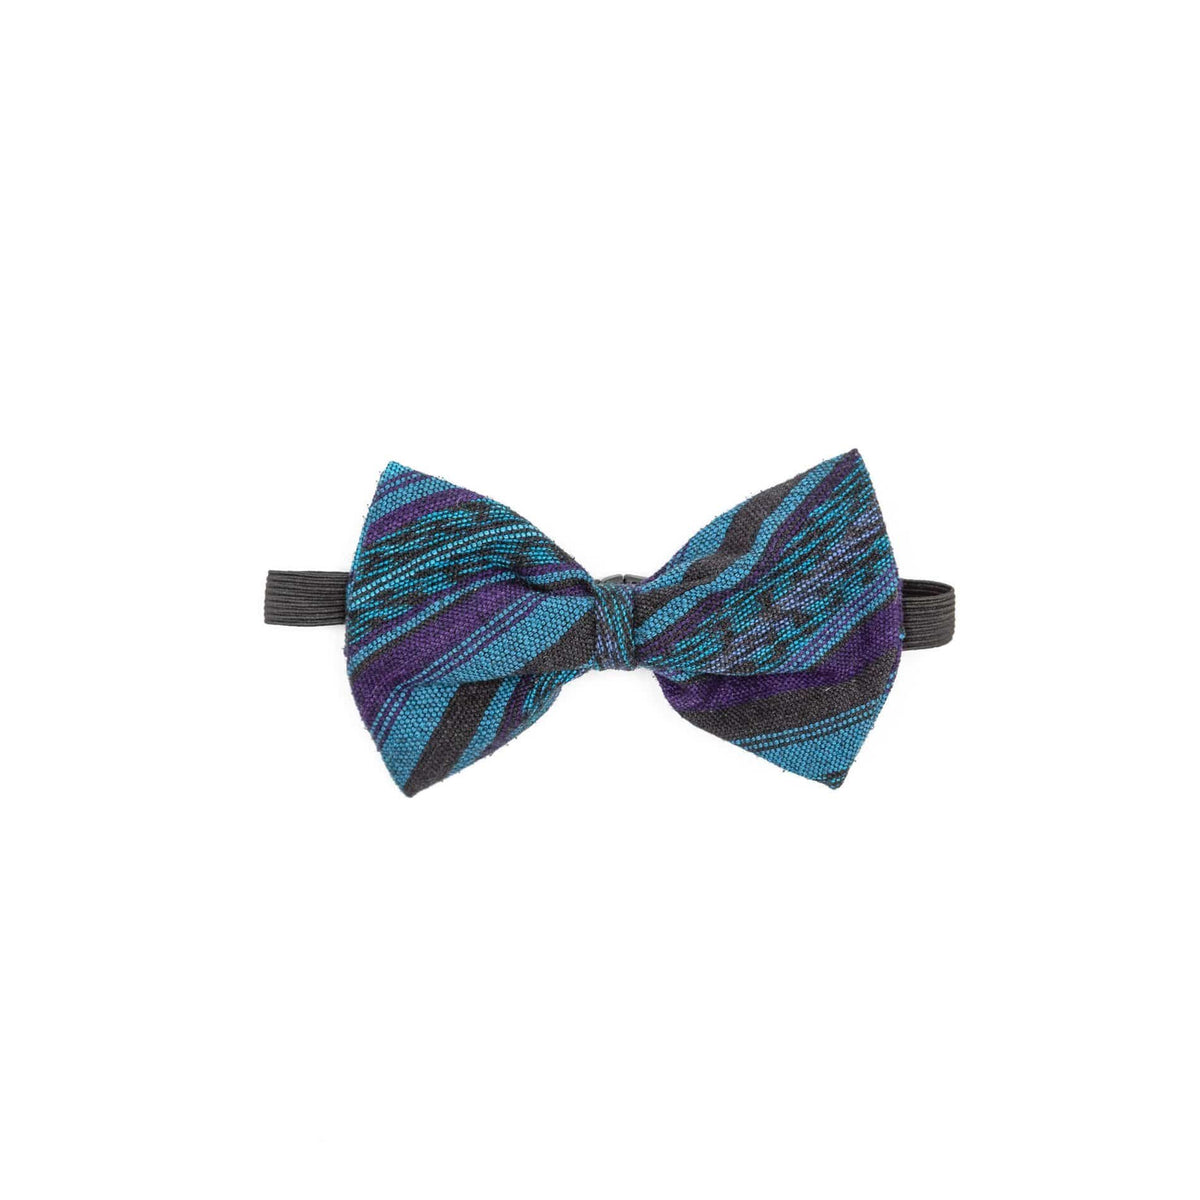 Guatemalan Fair Trade Recycled Corte Bow Tie